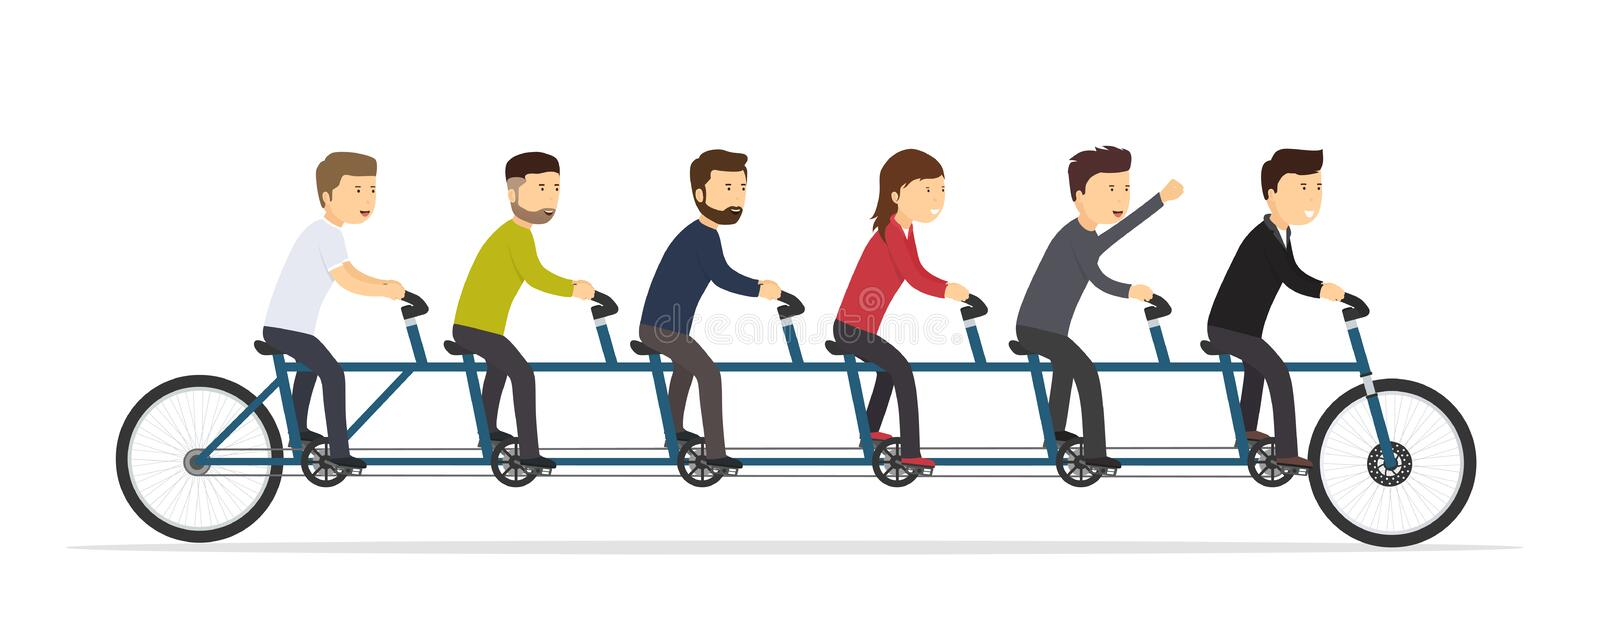 Business people riding on a five-seat bicycle. vector illustration